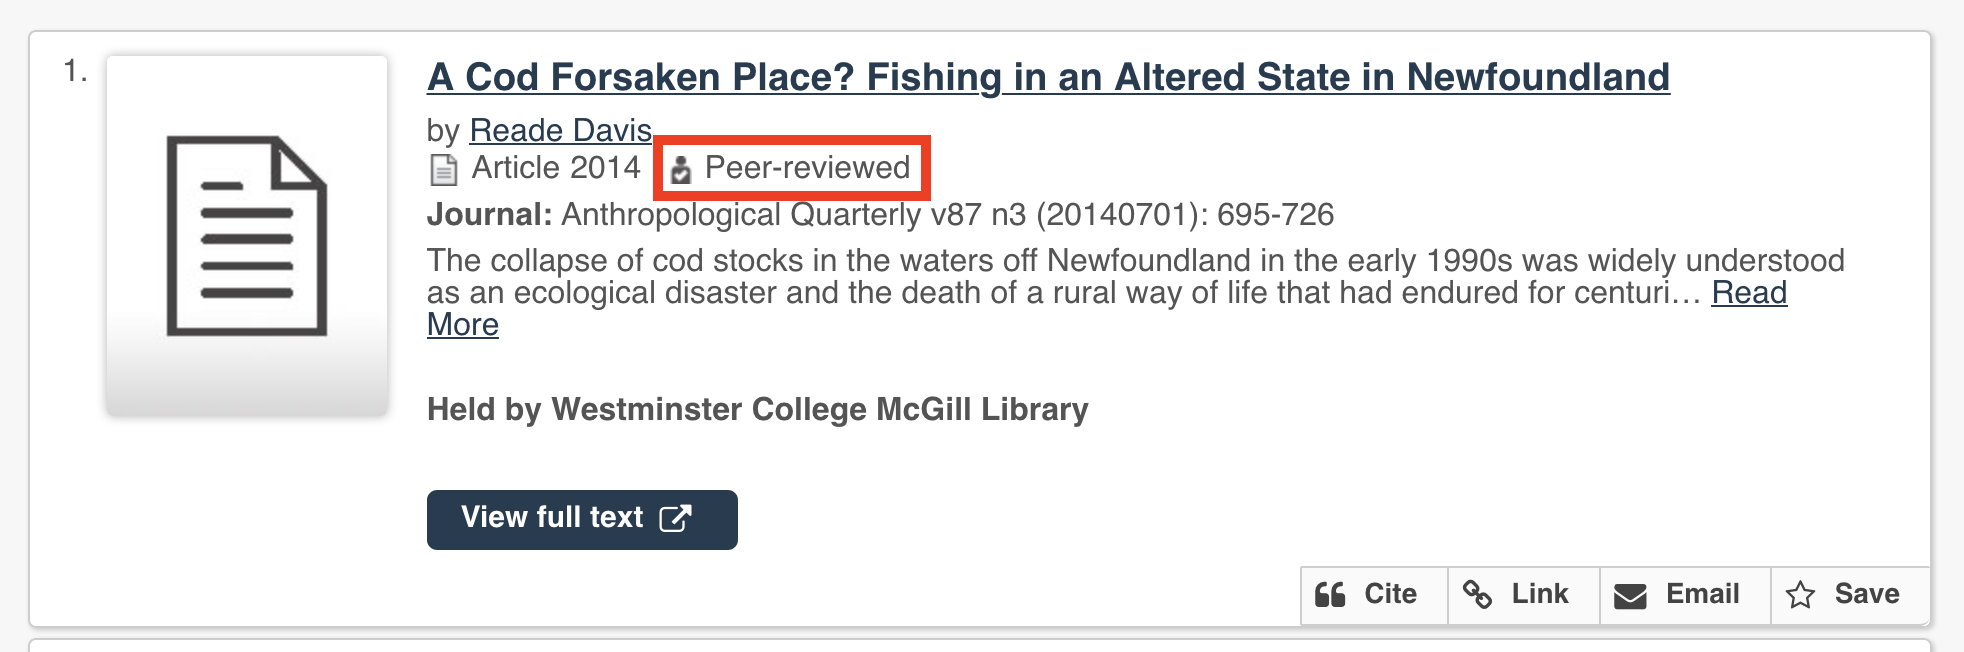 "Example article (""A Cod Forsaken Place? Fishing in an Altered State in Newfoundland"") with peer reviewed icon and tag next to publication date and highlighted."